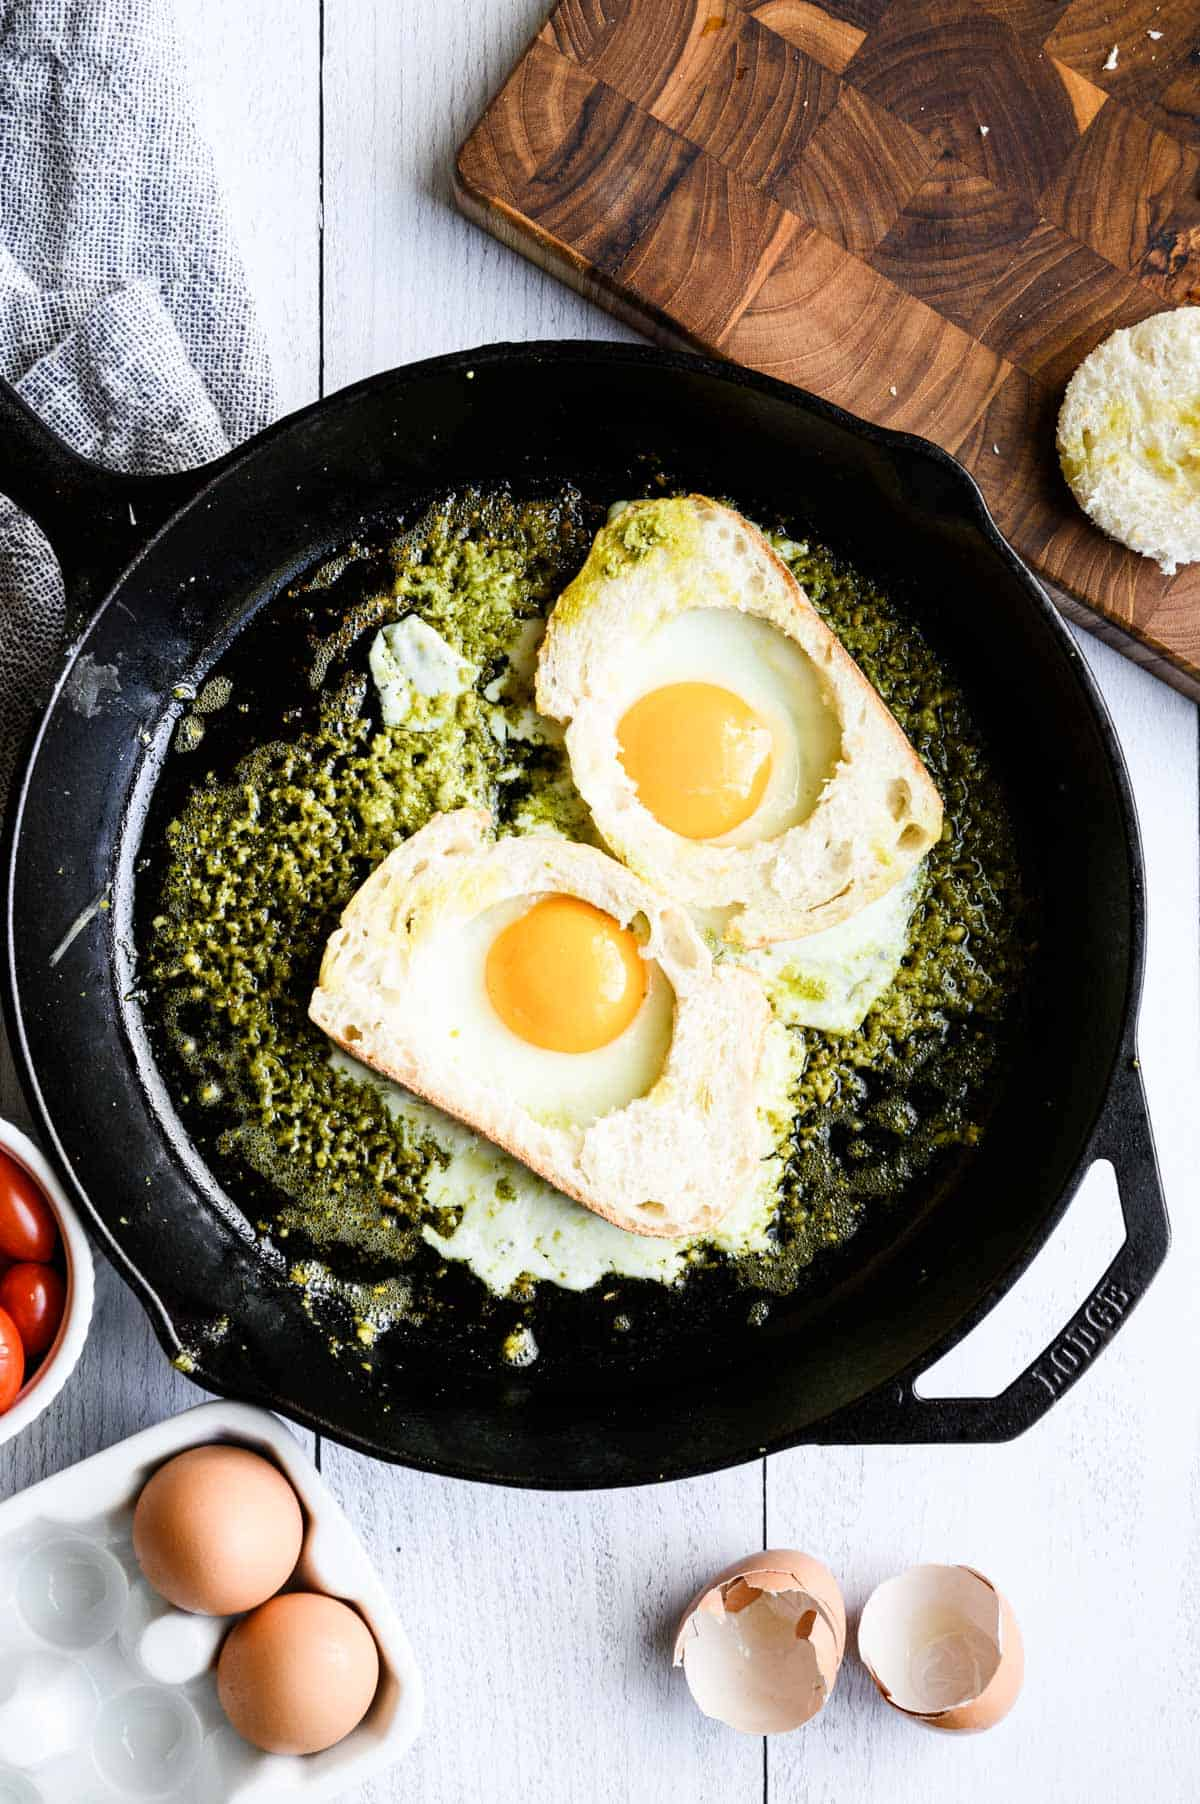 skillet with eggs in cut out bread cooking in pesto